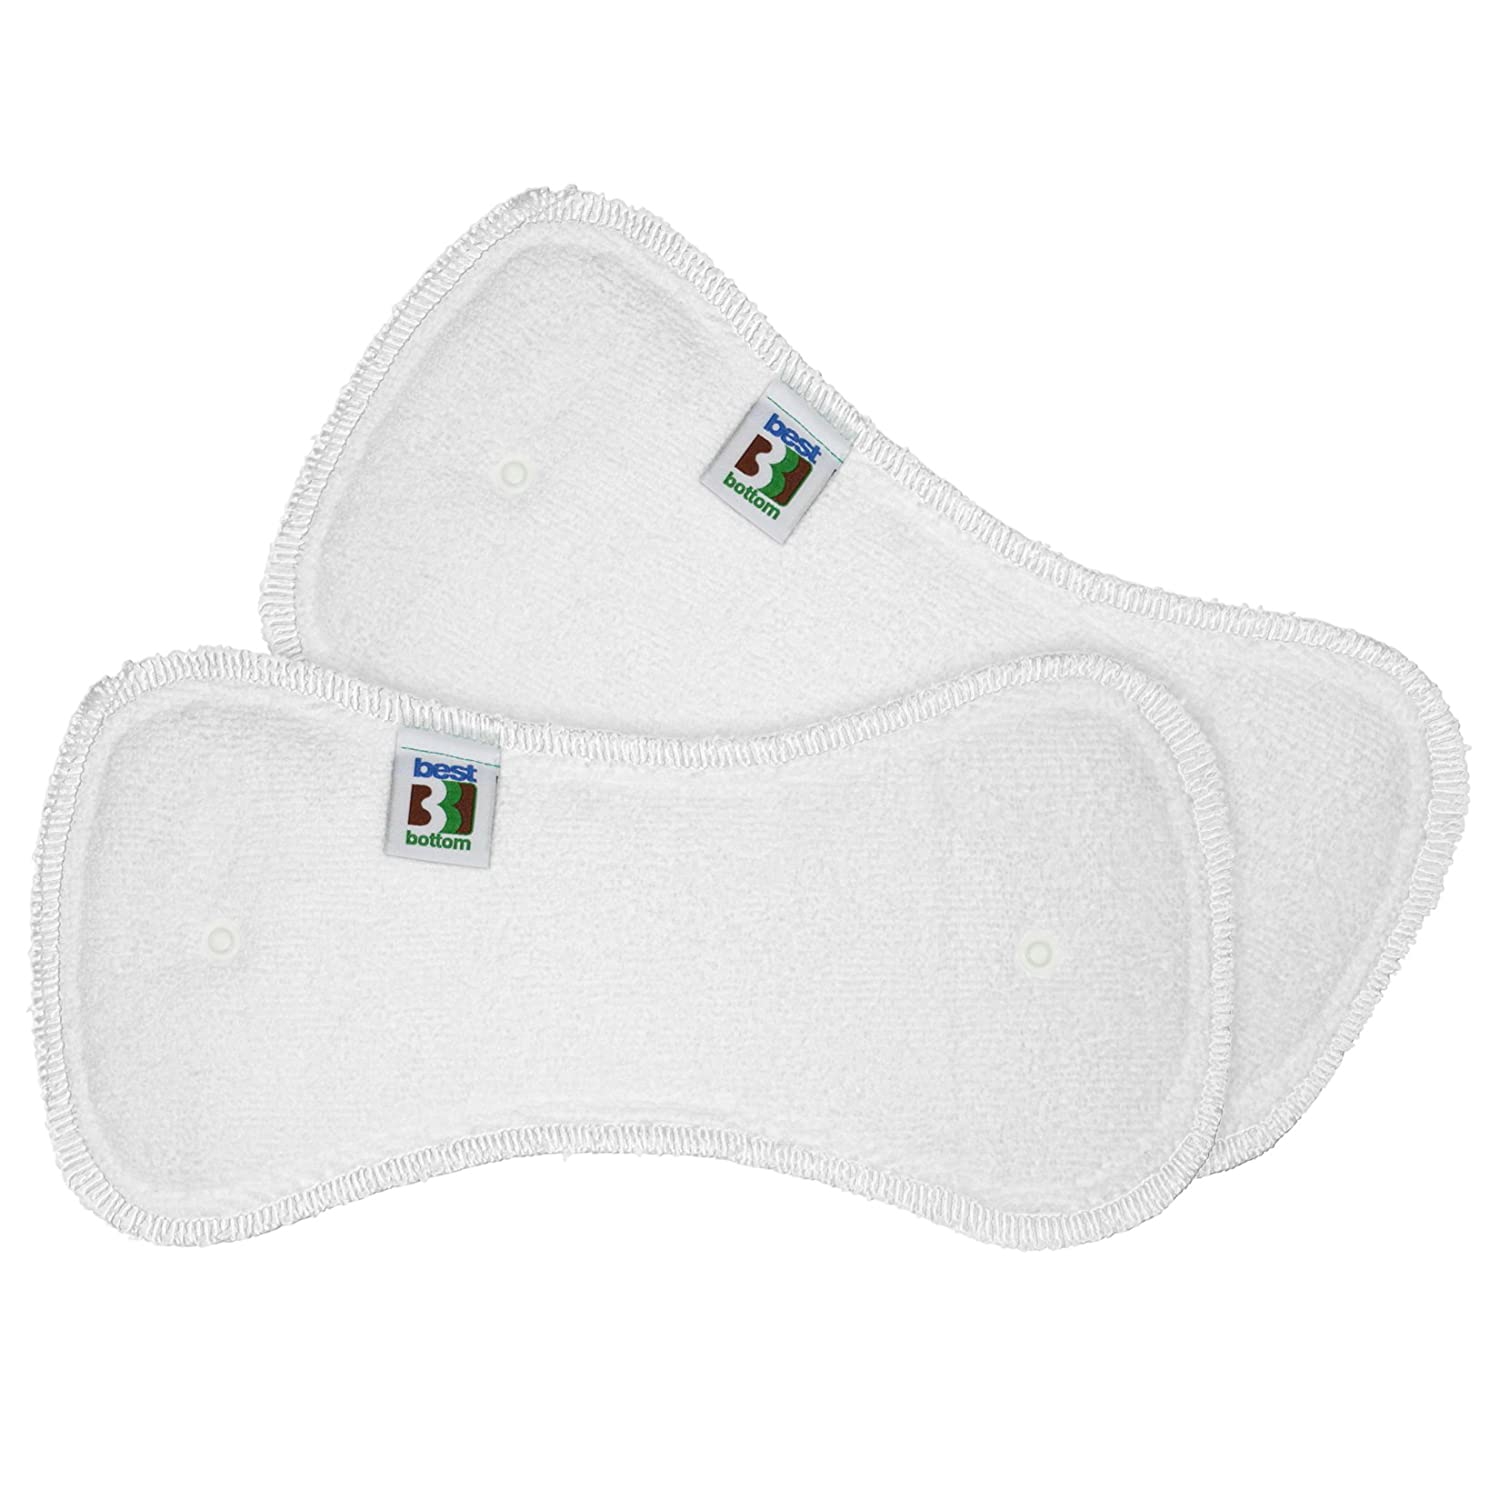 2 Count Large Best Bottom Stay Dry Overnight Inserts